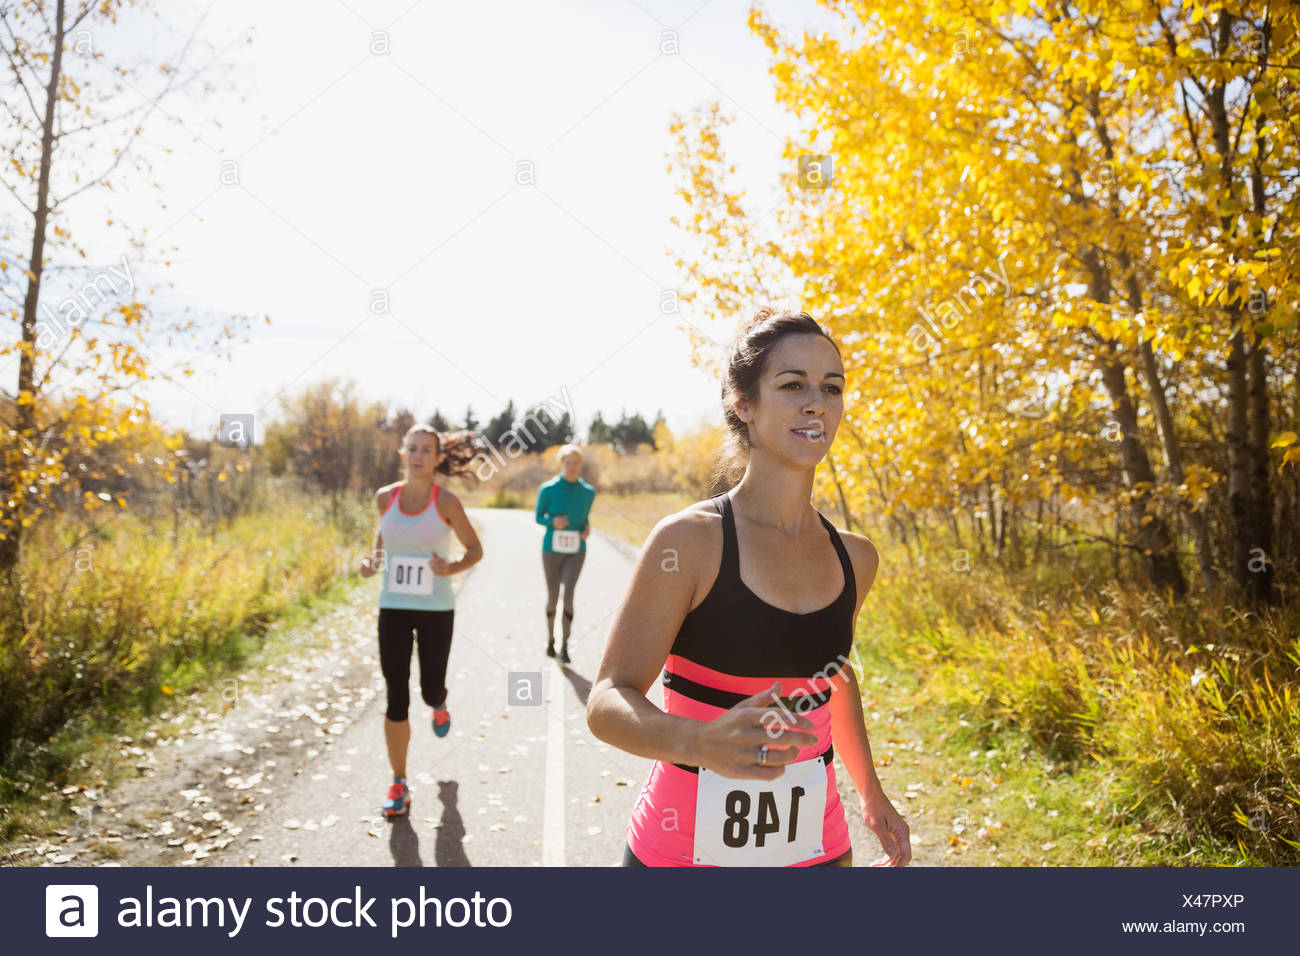 Runners racing on sunny autumn path - Stock Image